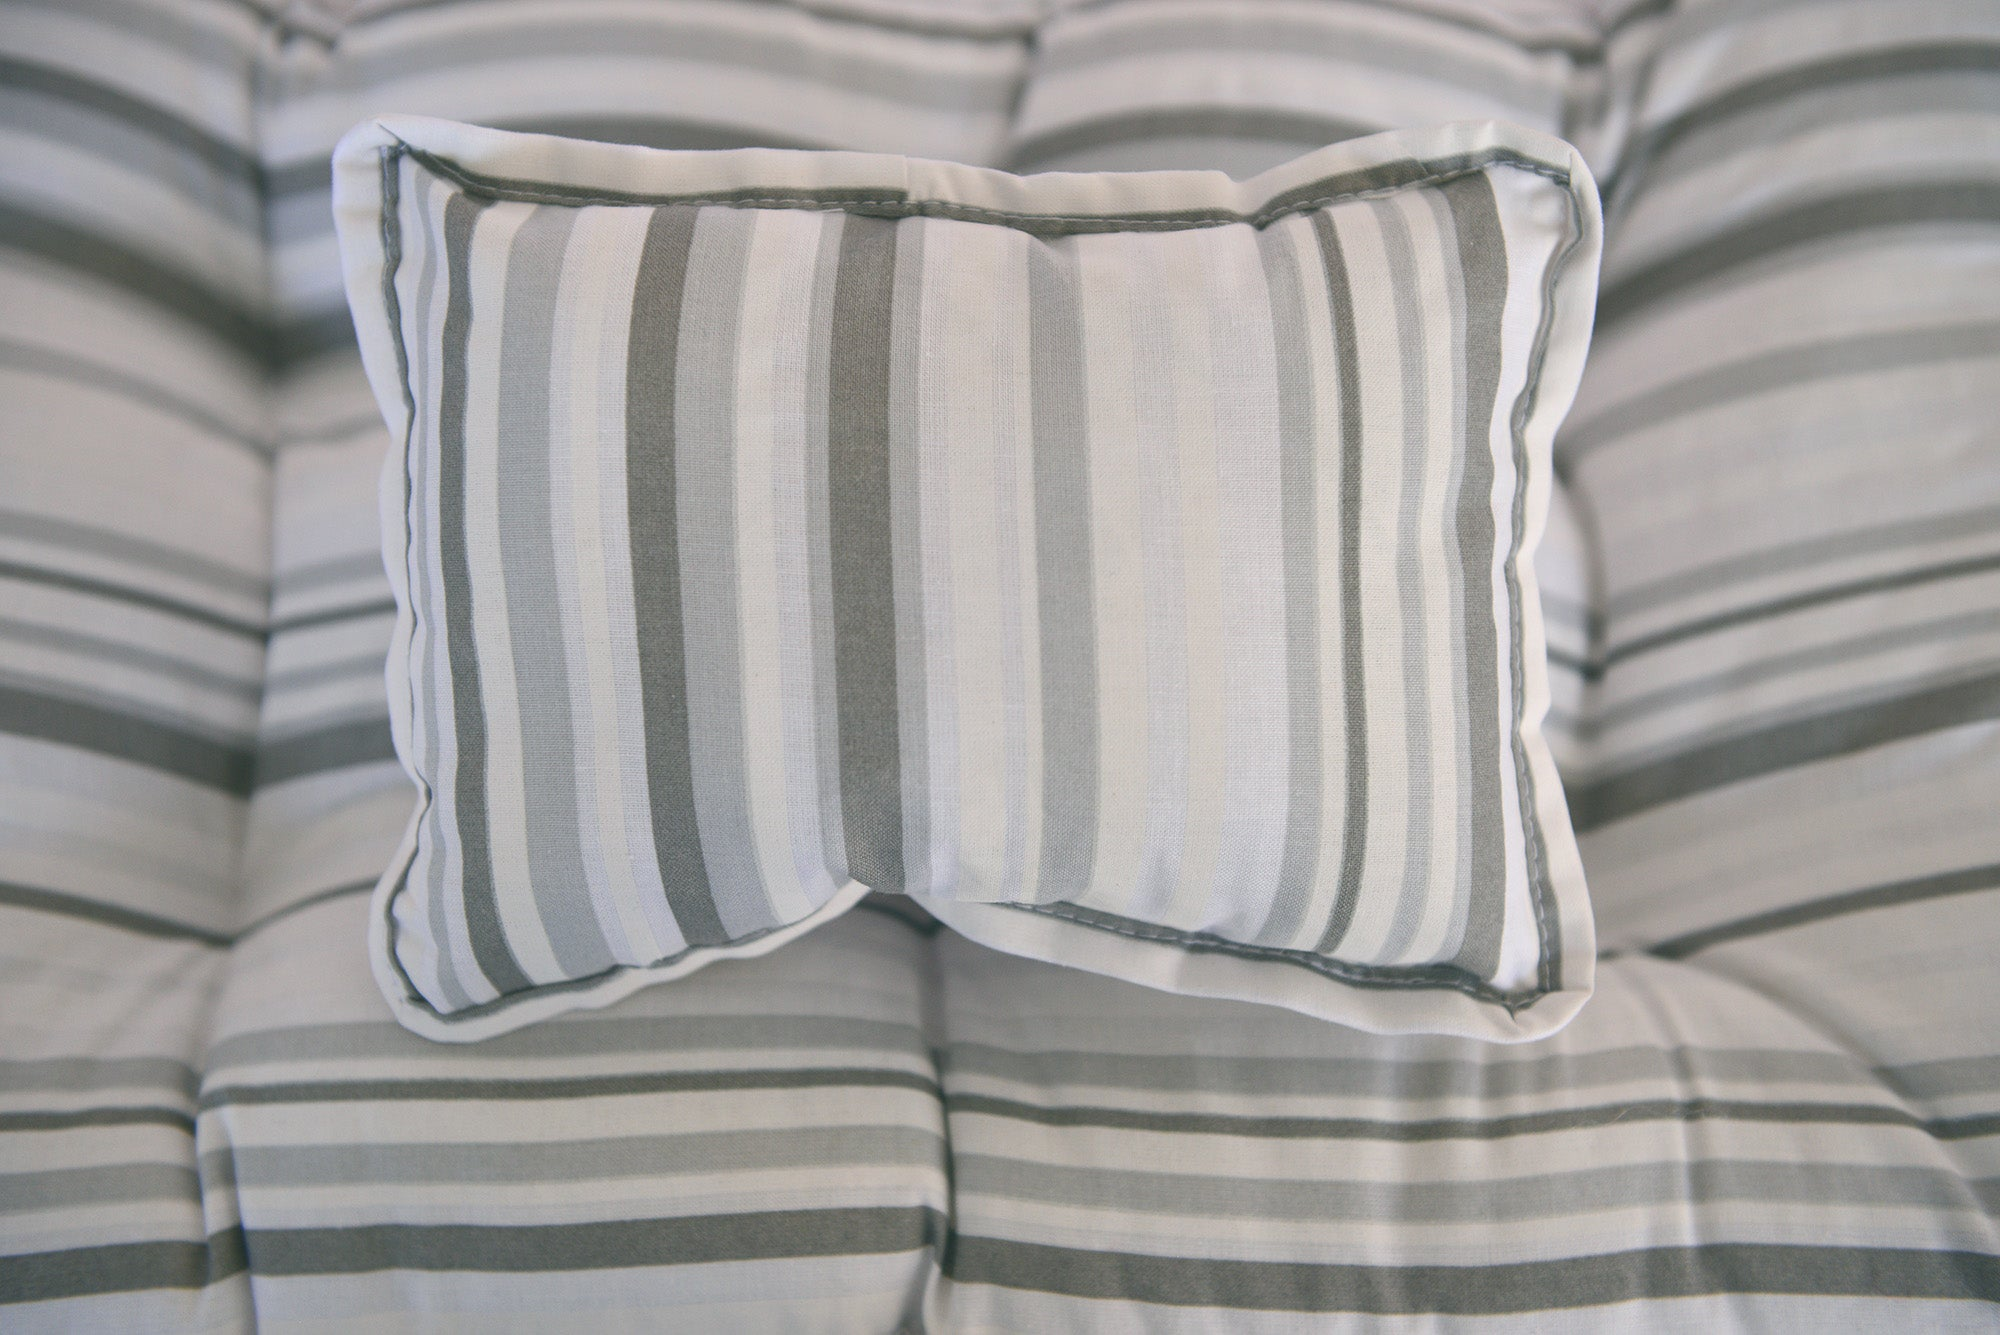 SET Mattress and Pillow - Gray and White Stripes-Newborn Photography Props